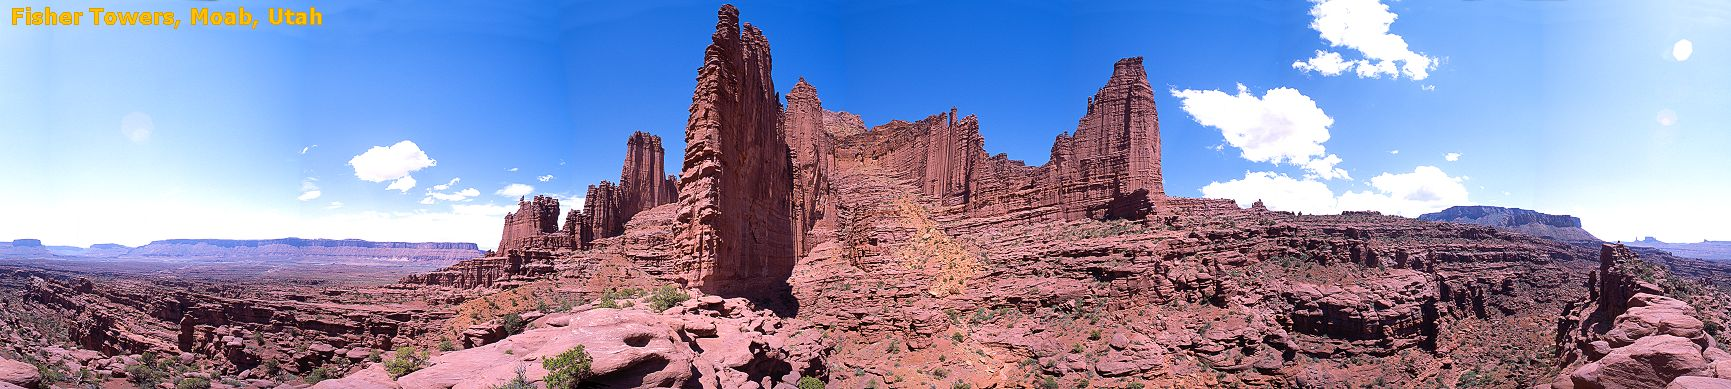 Panorama of the Fisher Towers, Moab, Utah, 2001